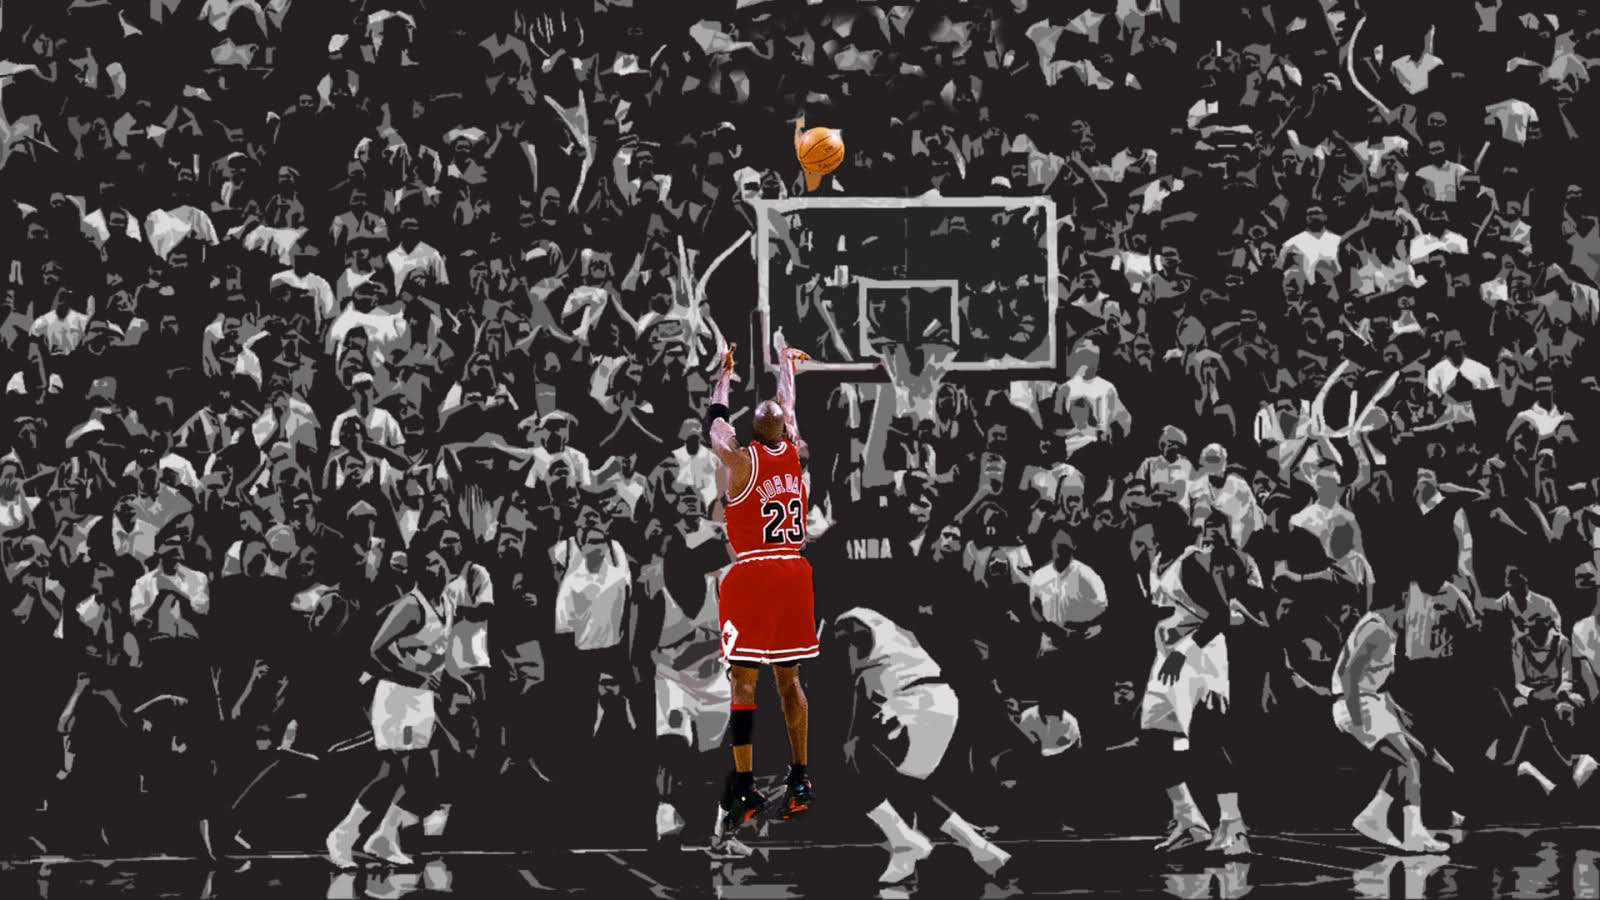 Jordan Laptop Wallpapers Top Free Jordan Laptop Backgrounds Wallpaperaccess